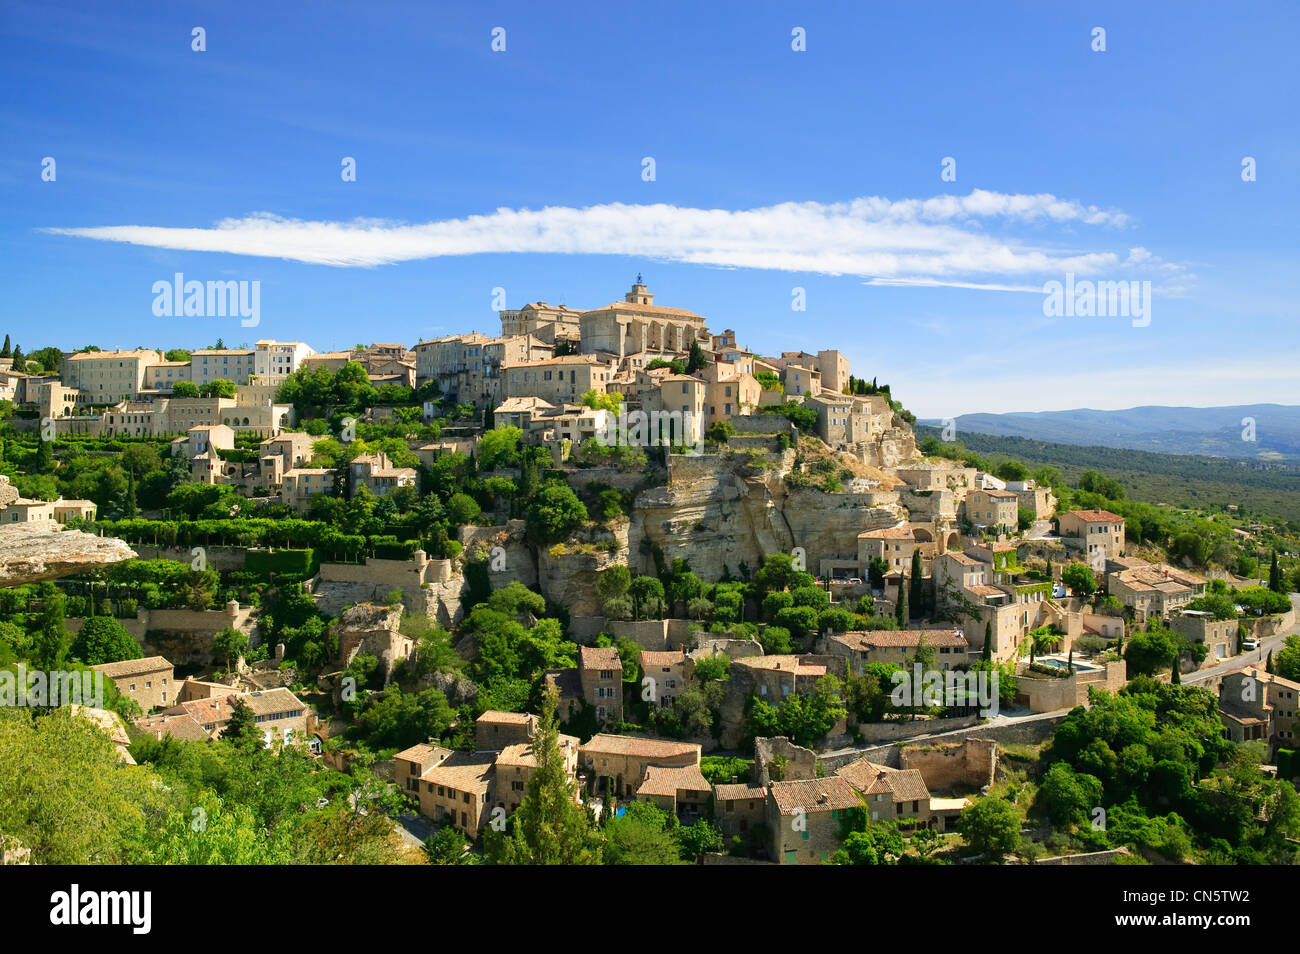 gordes vaucluse provence alpes cote d azur france stock photo 47457790 alamy. Black Bedroom Furniture Sets. Home Design Ideas